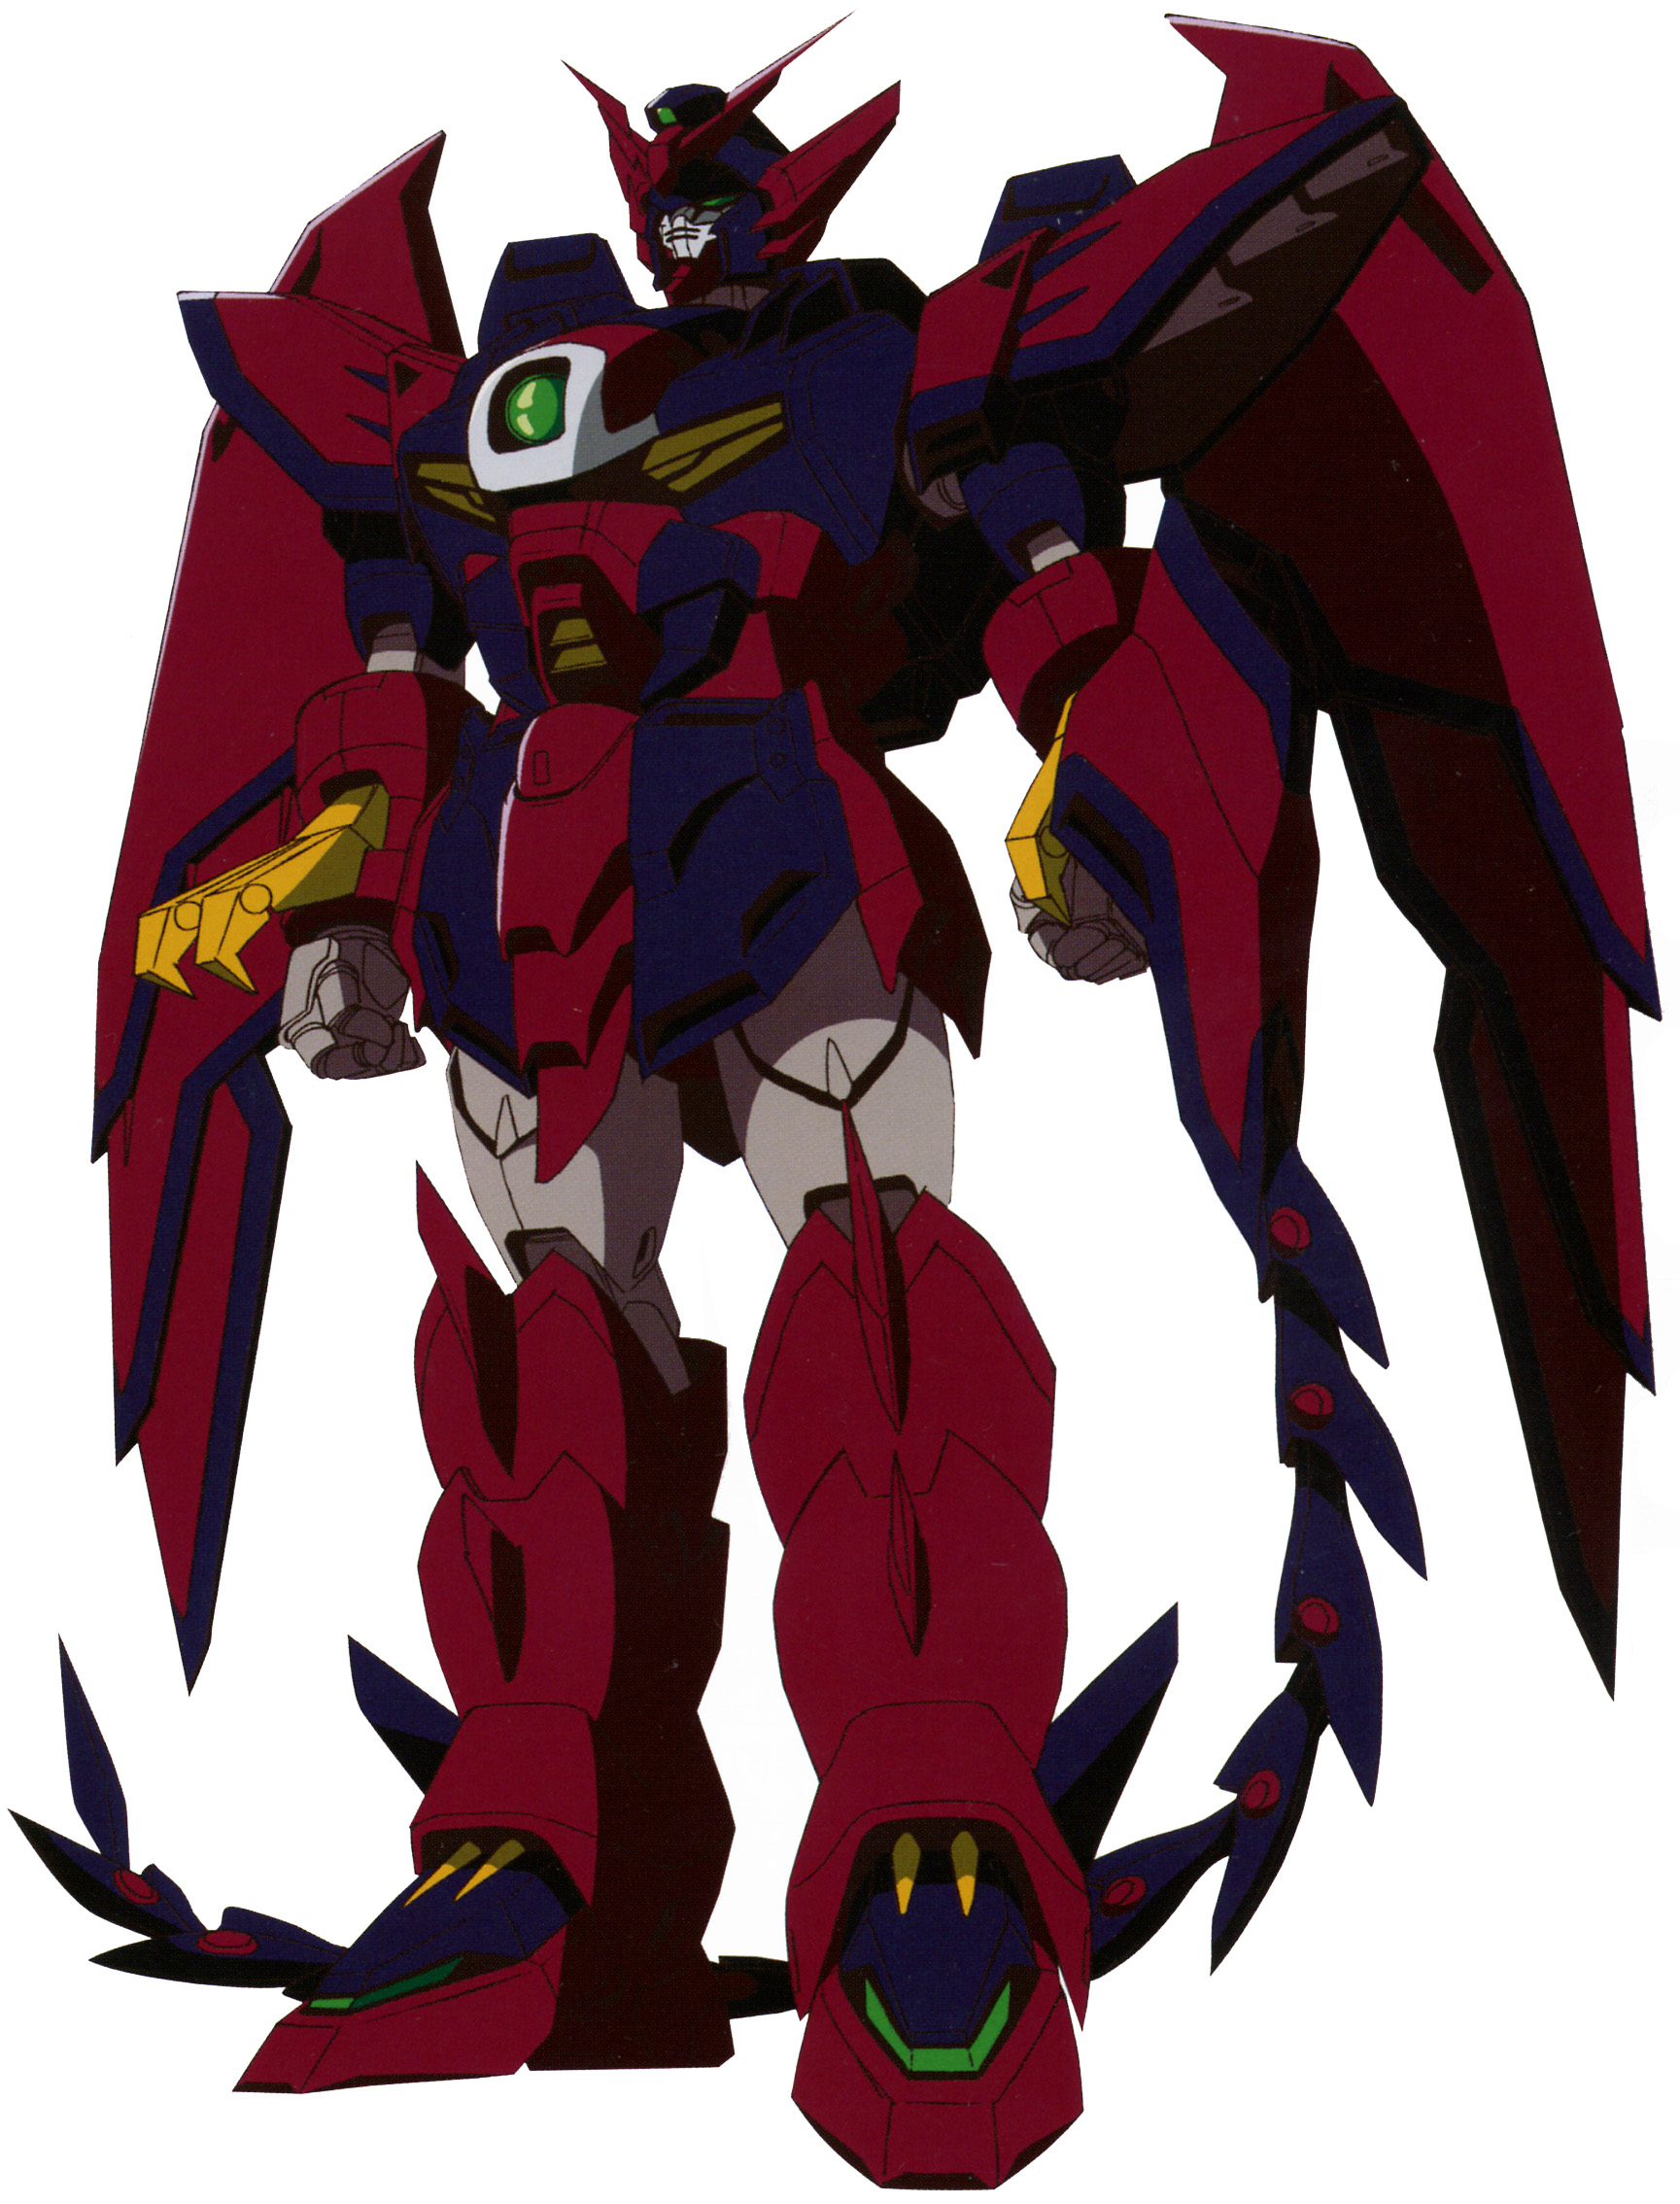 OZ-13MS Gundam Epyon in mobile suit mode